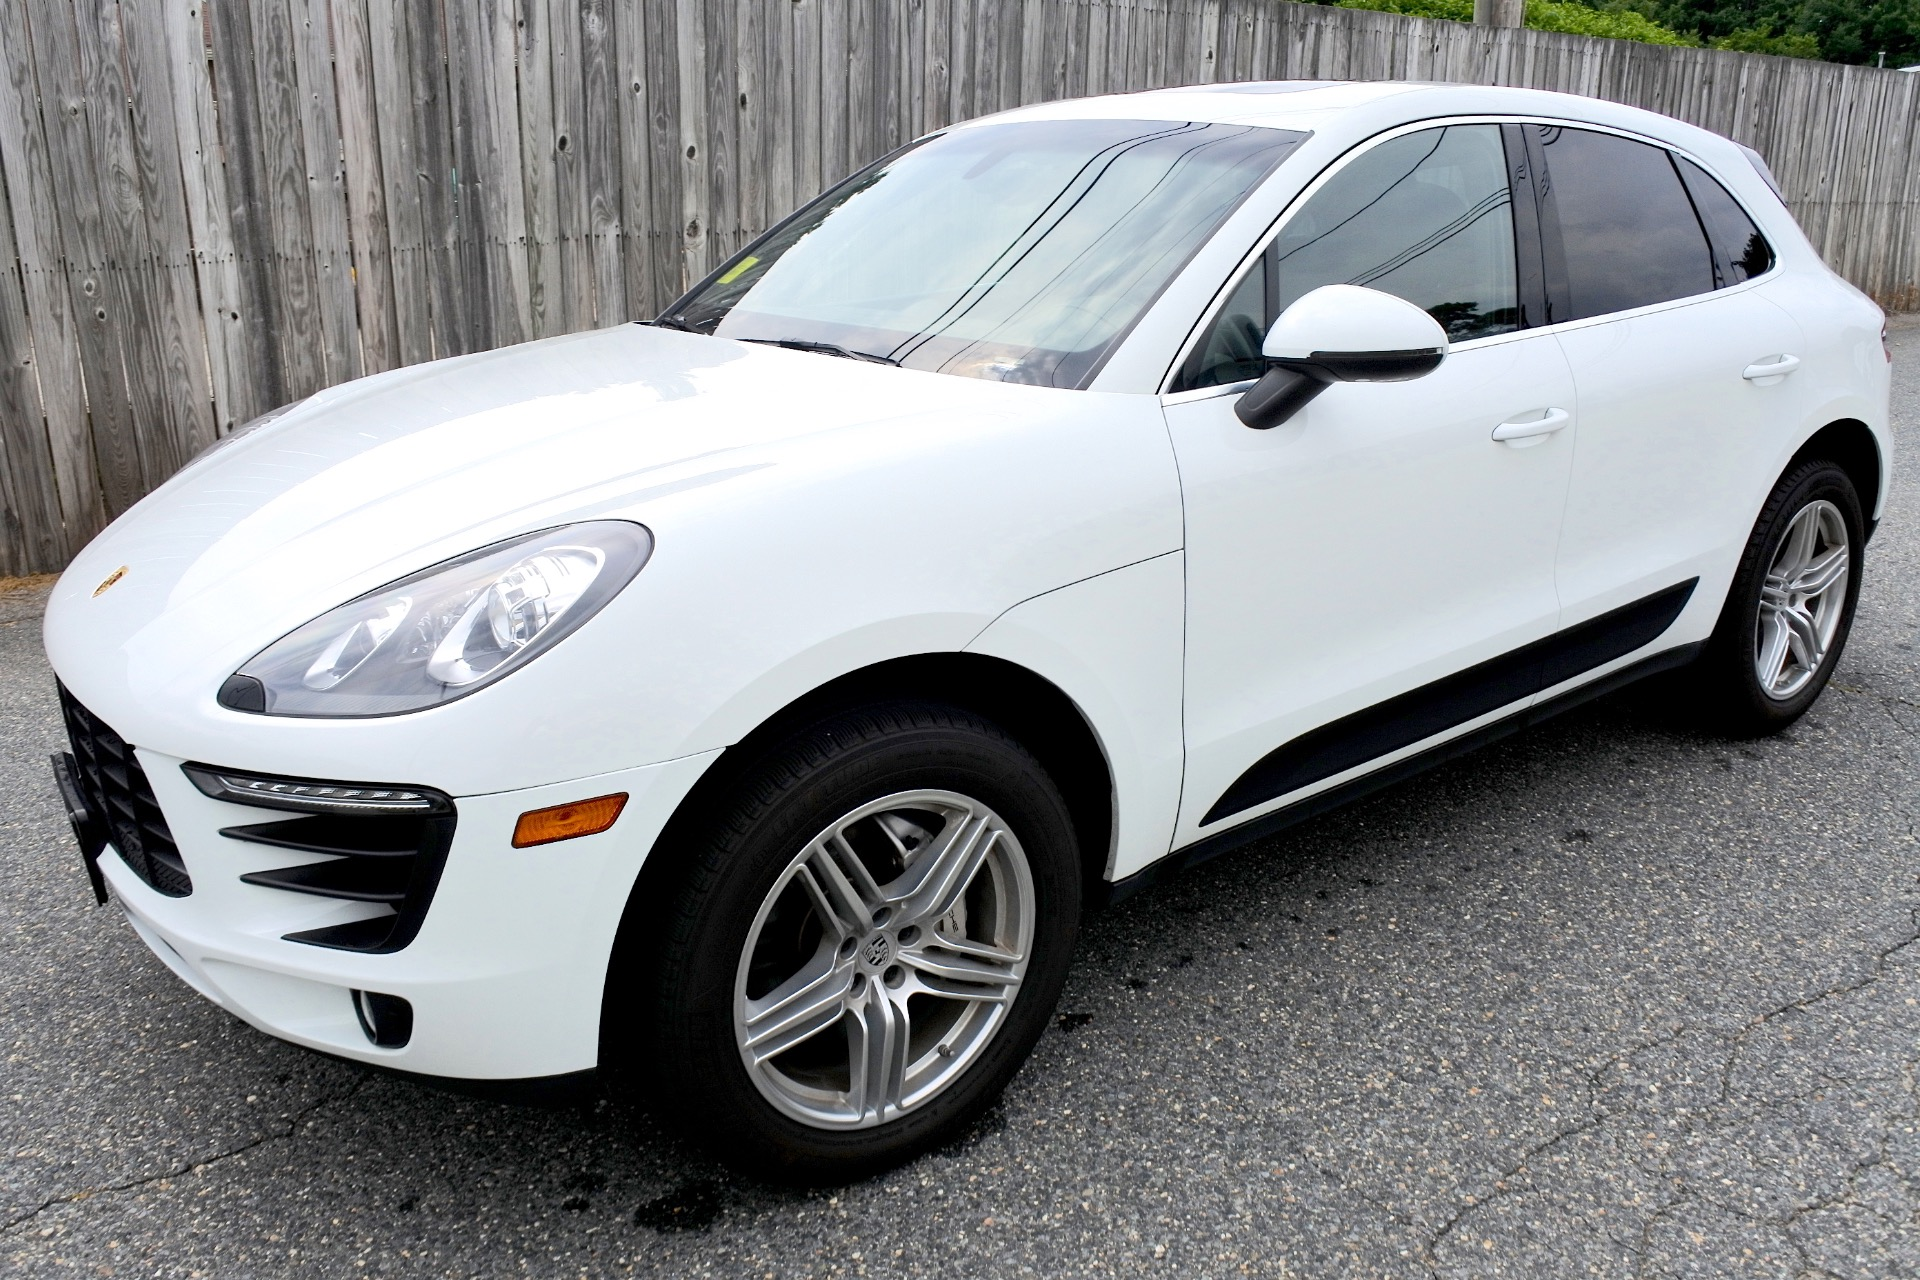 Used 2015 Porsche Macan AWD 4dr S Used 2015 Porsche Macan AWD 4dr S for sale  at Metro West Motorcars LLC in Shrewsbury MA 1